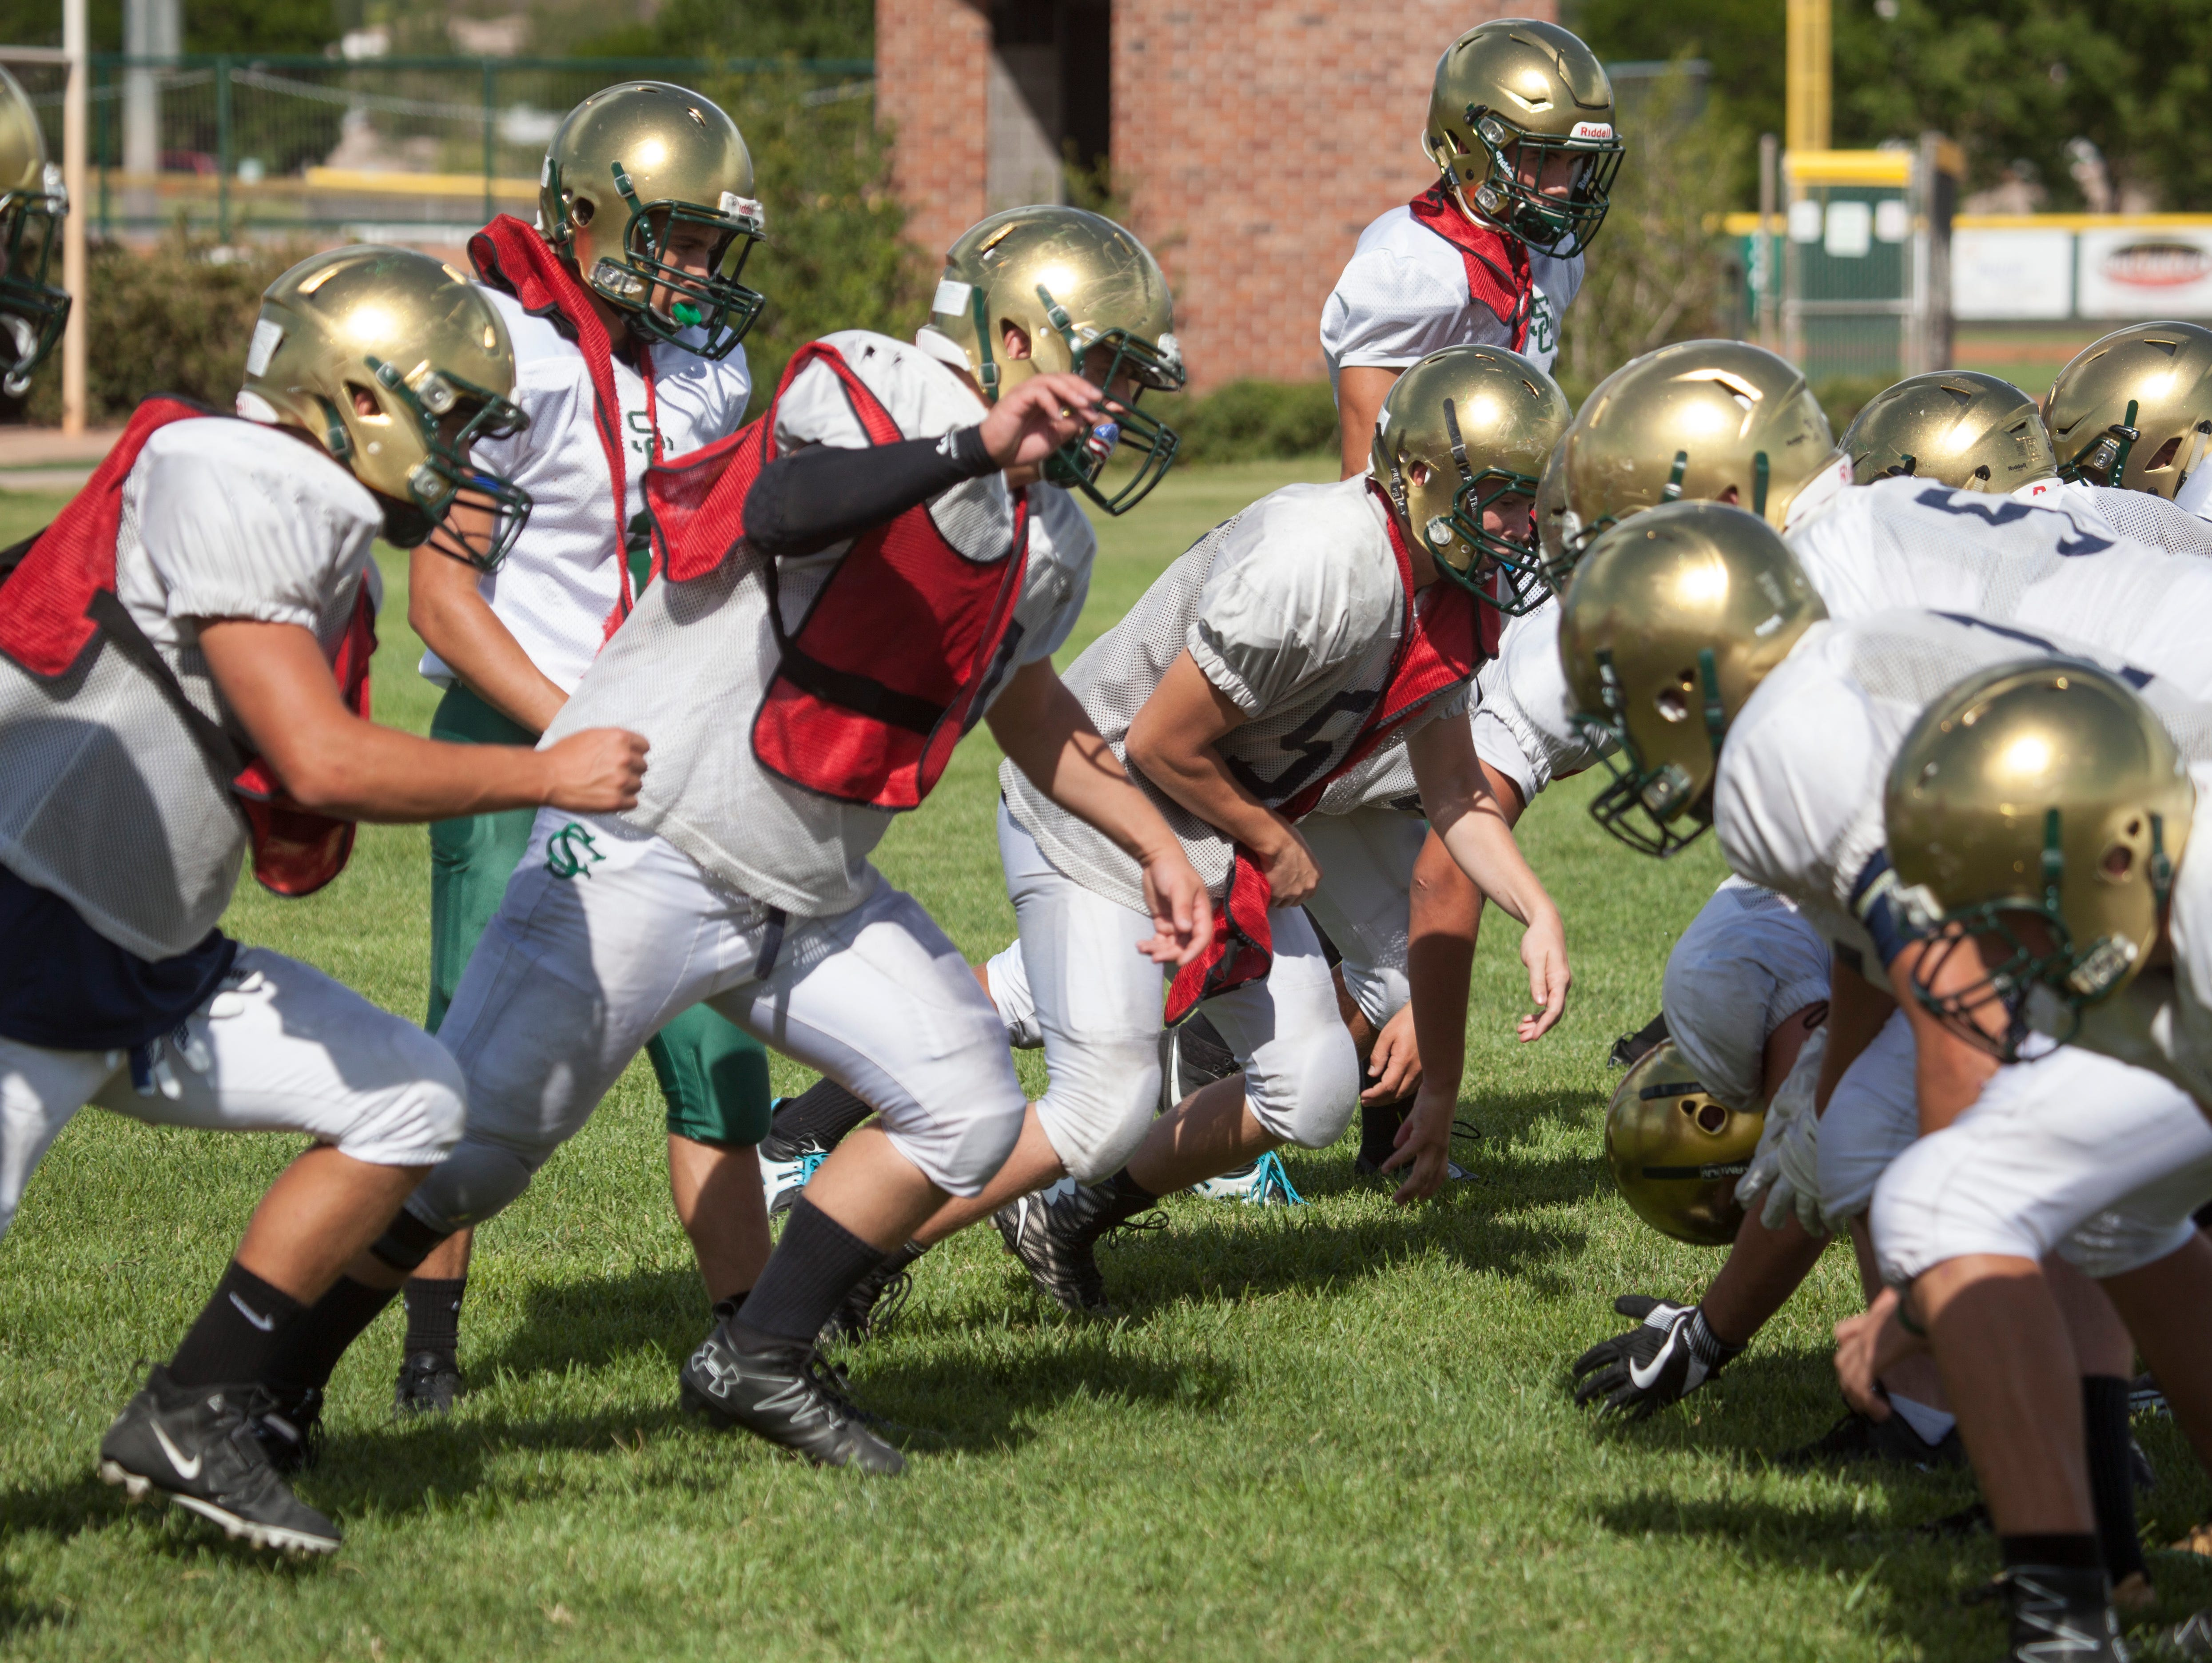 The Snow Canyon High School football team practices for their upcoming season Wednesday, August 10, 2016.